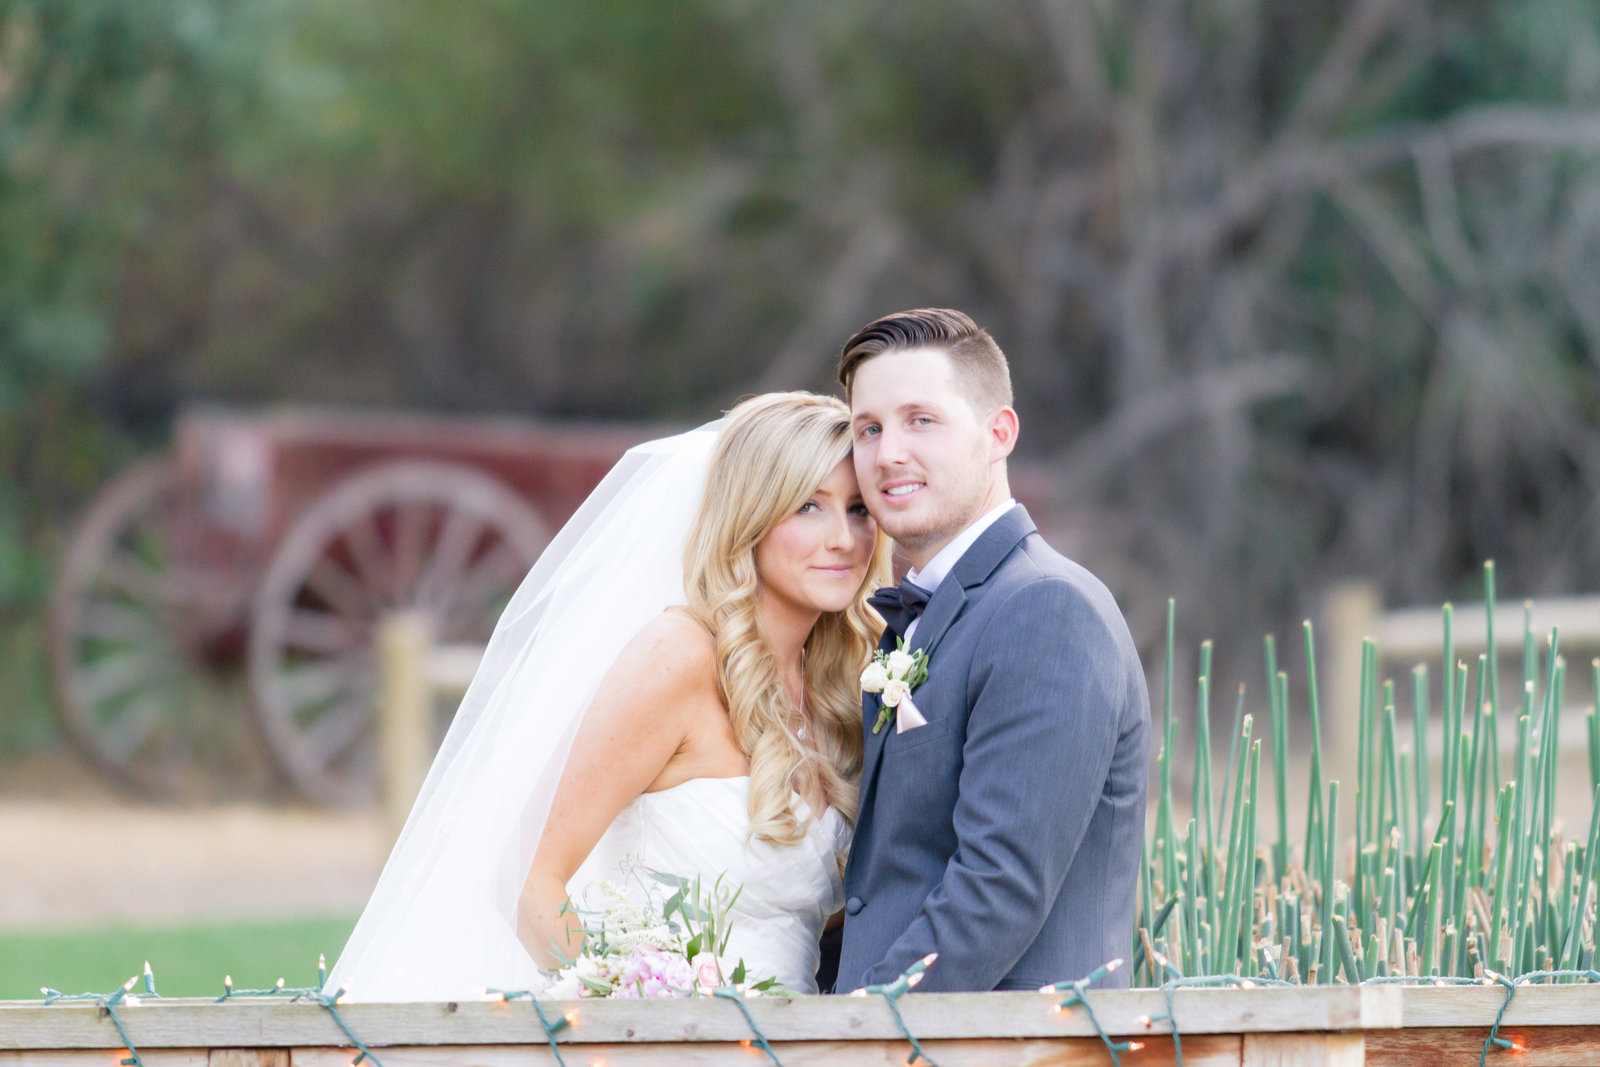 49-Temecula Wedding Pictures-Temecula Creek Inn_